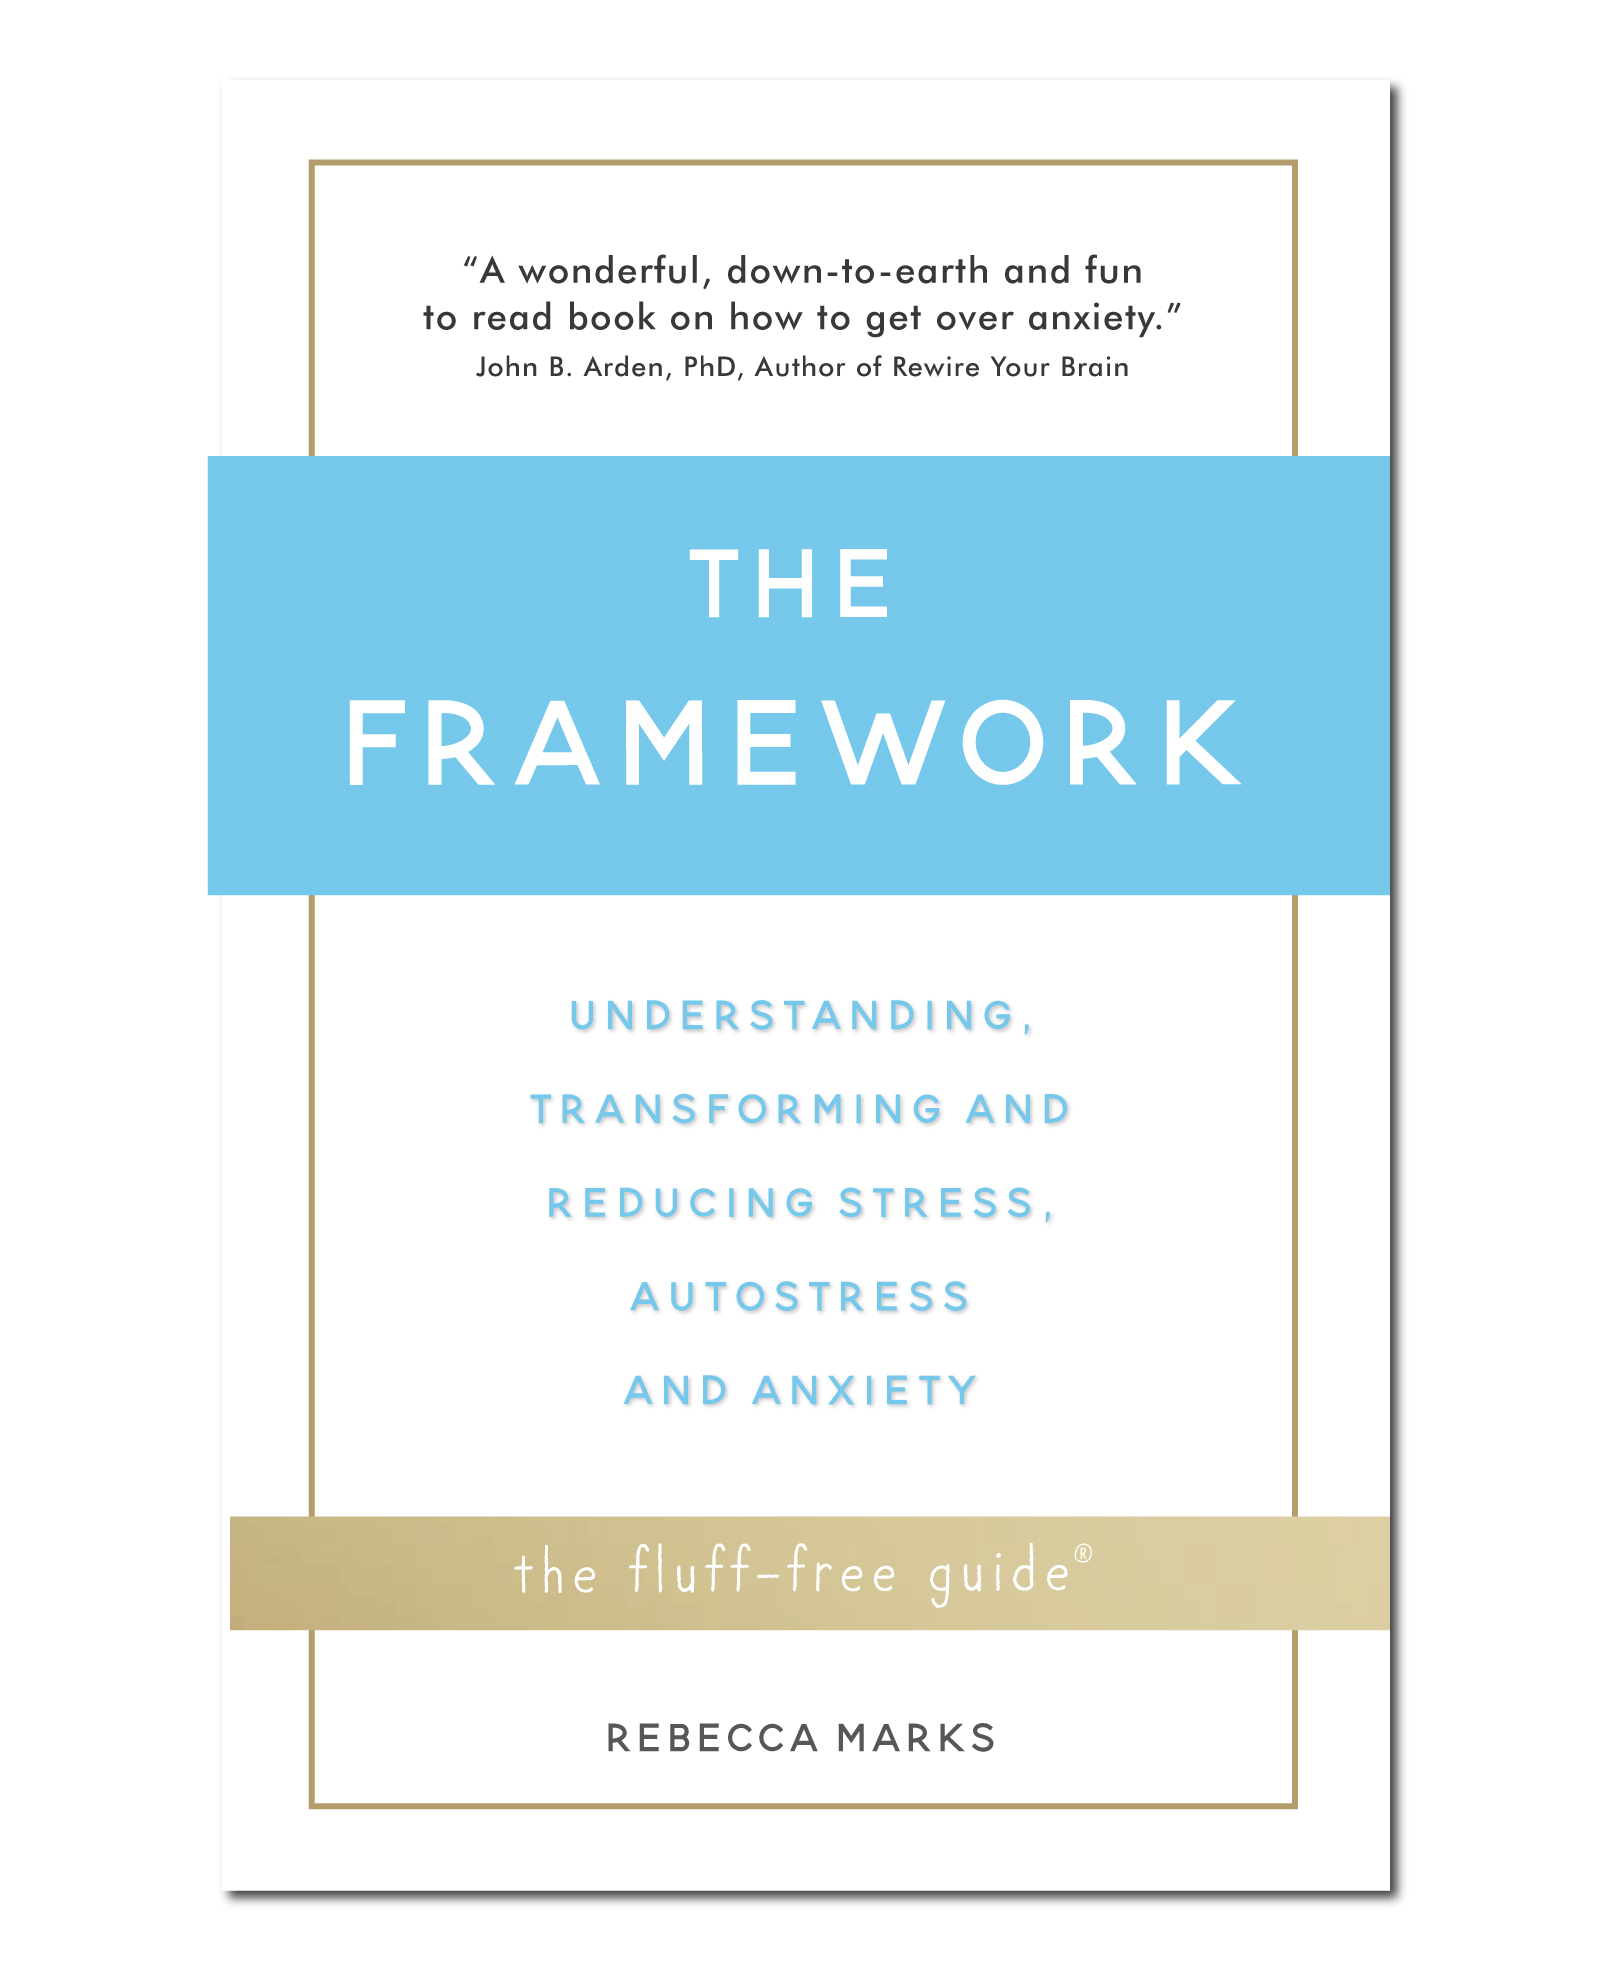 The Framework: Understanding, Transforming and Reducing Stress, Autostress and Anxiety